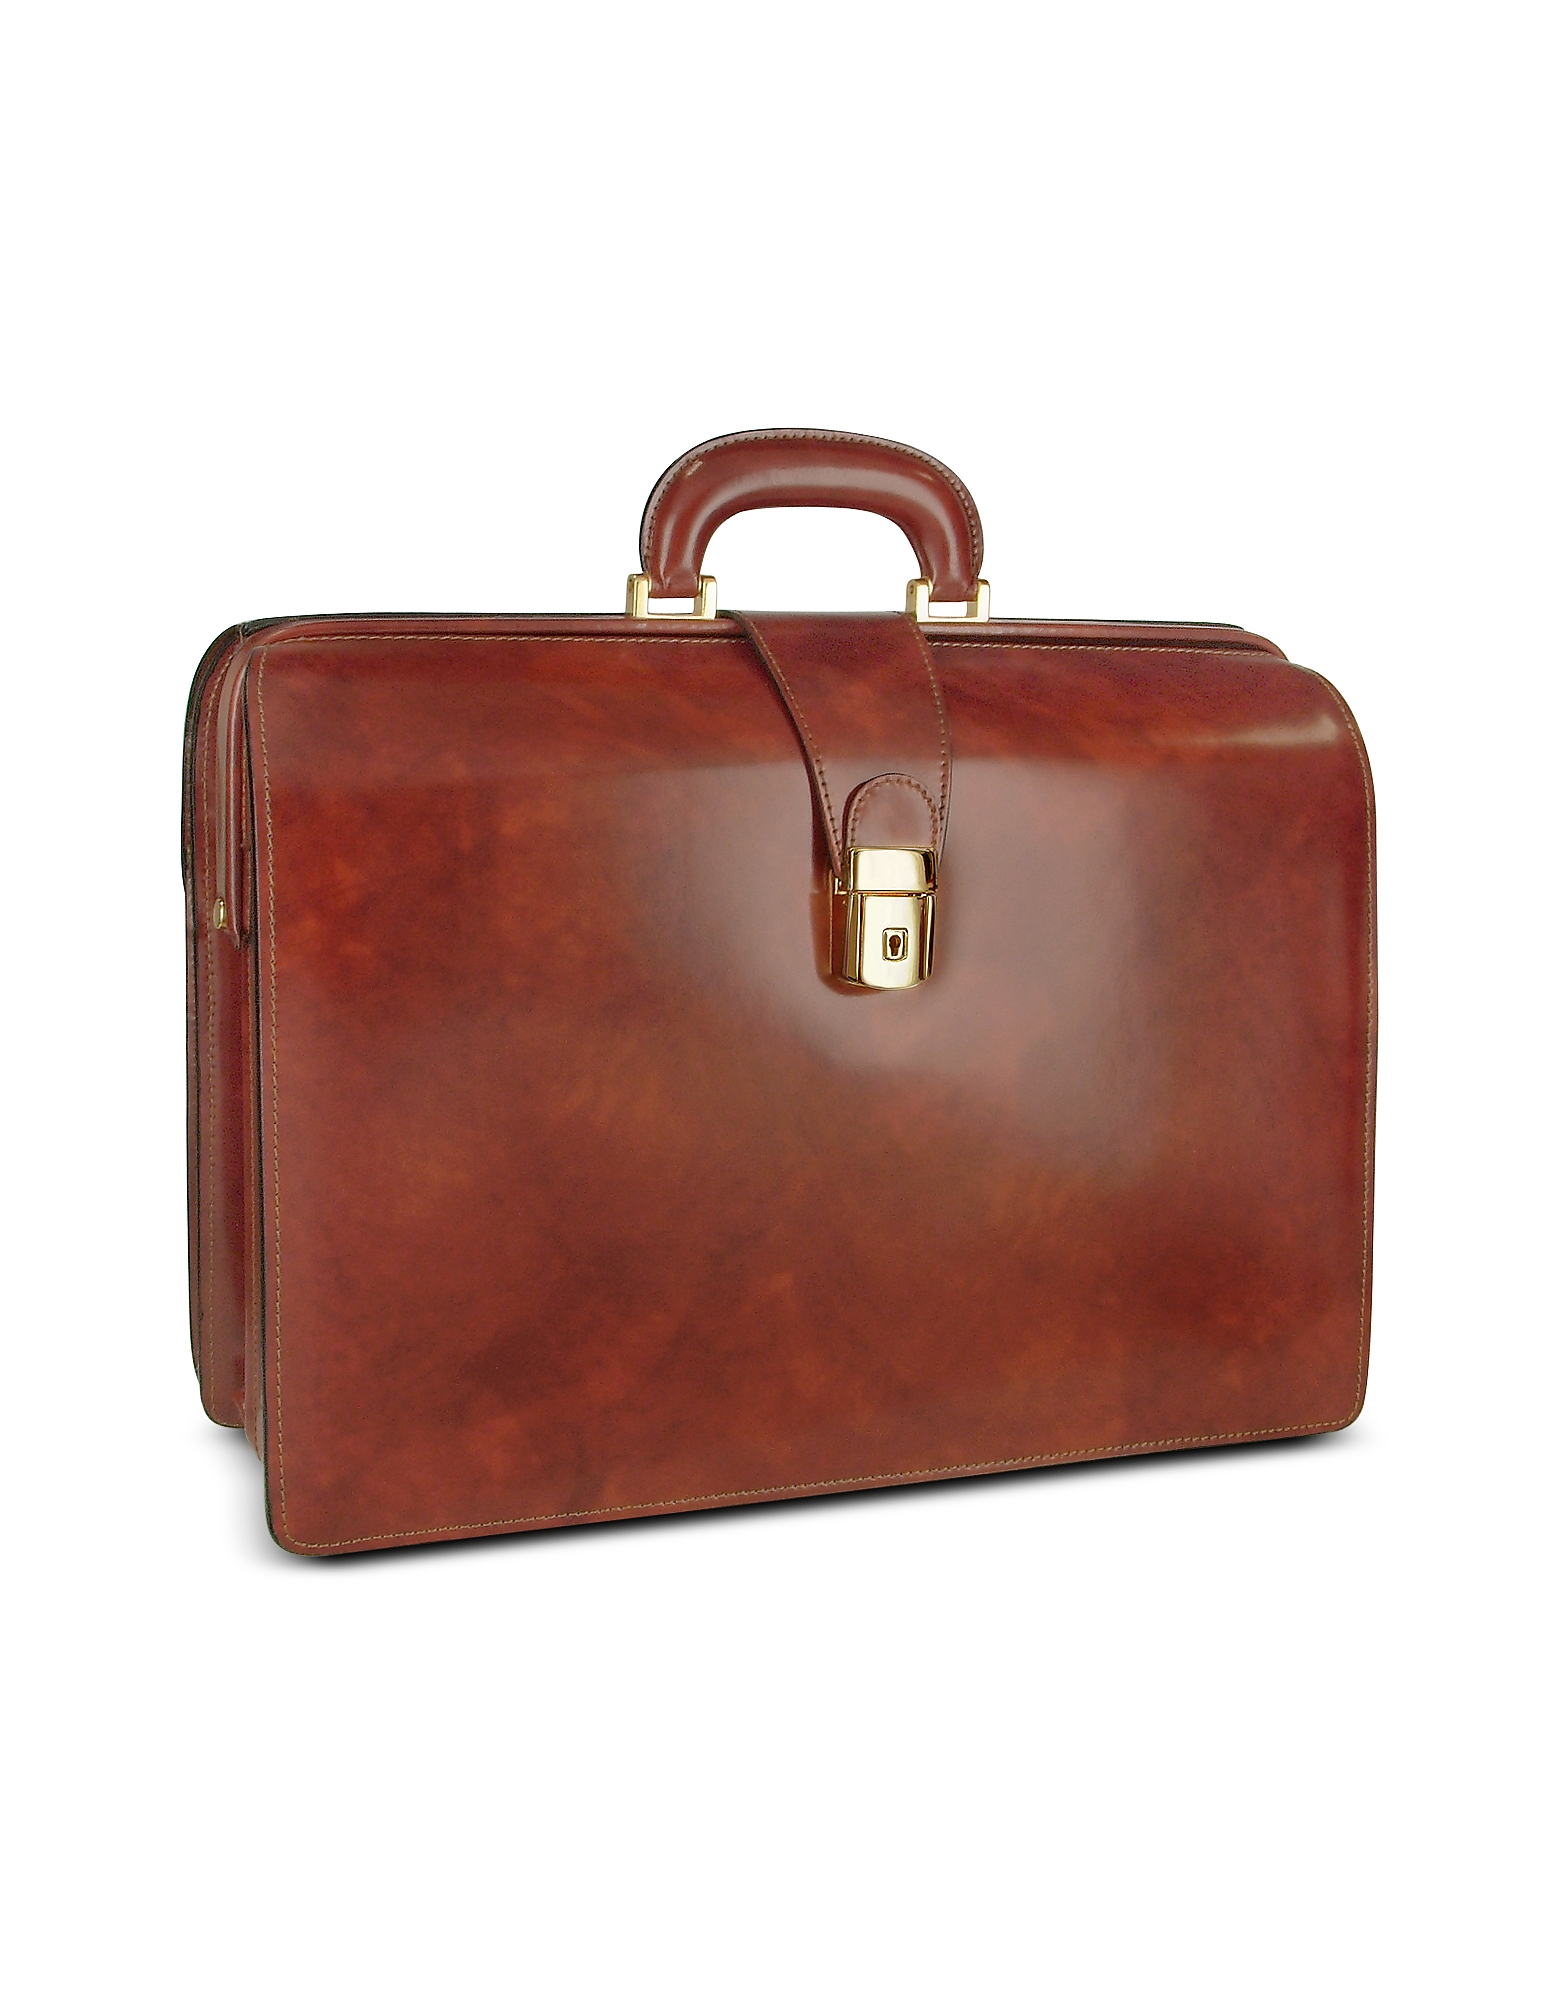 Pratesi Briefcases, Men's Leather Doctor Bag Briefcase w/Interior Lighting